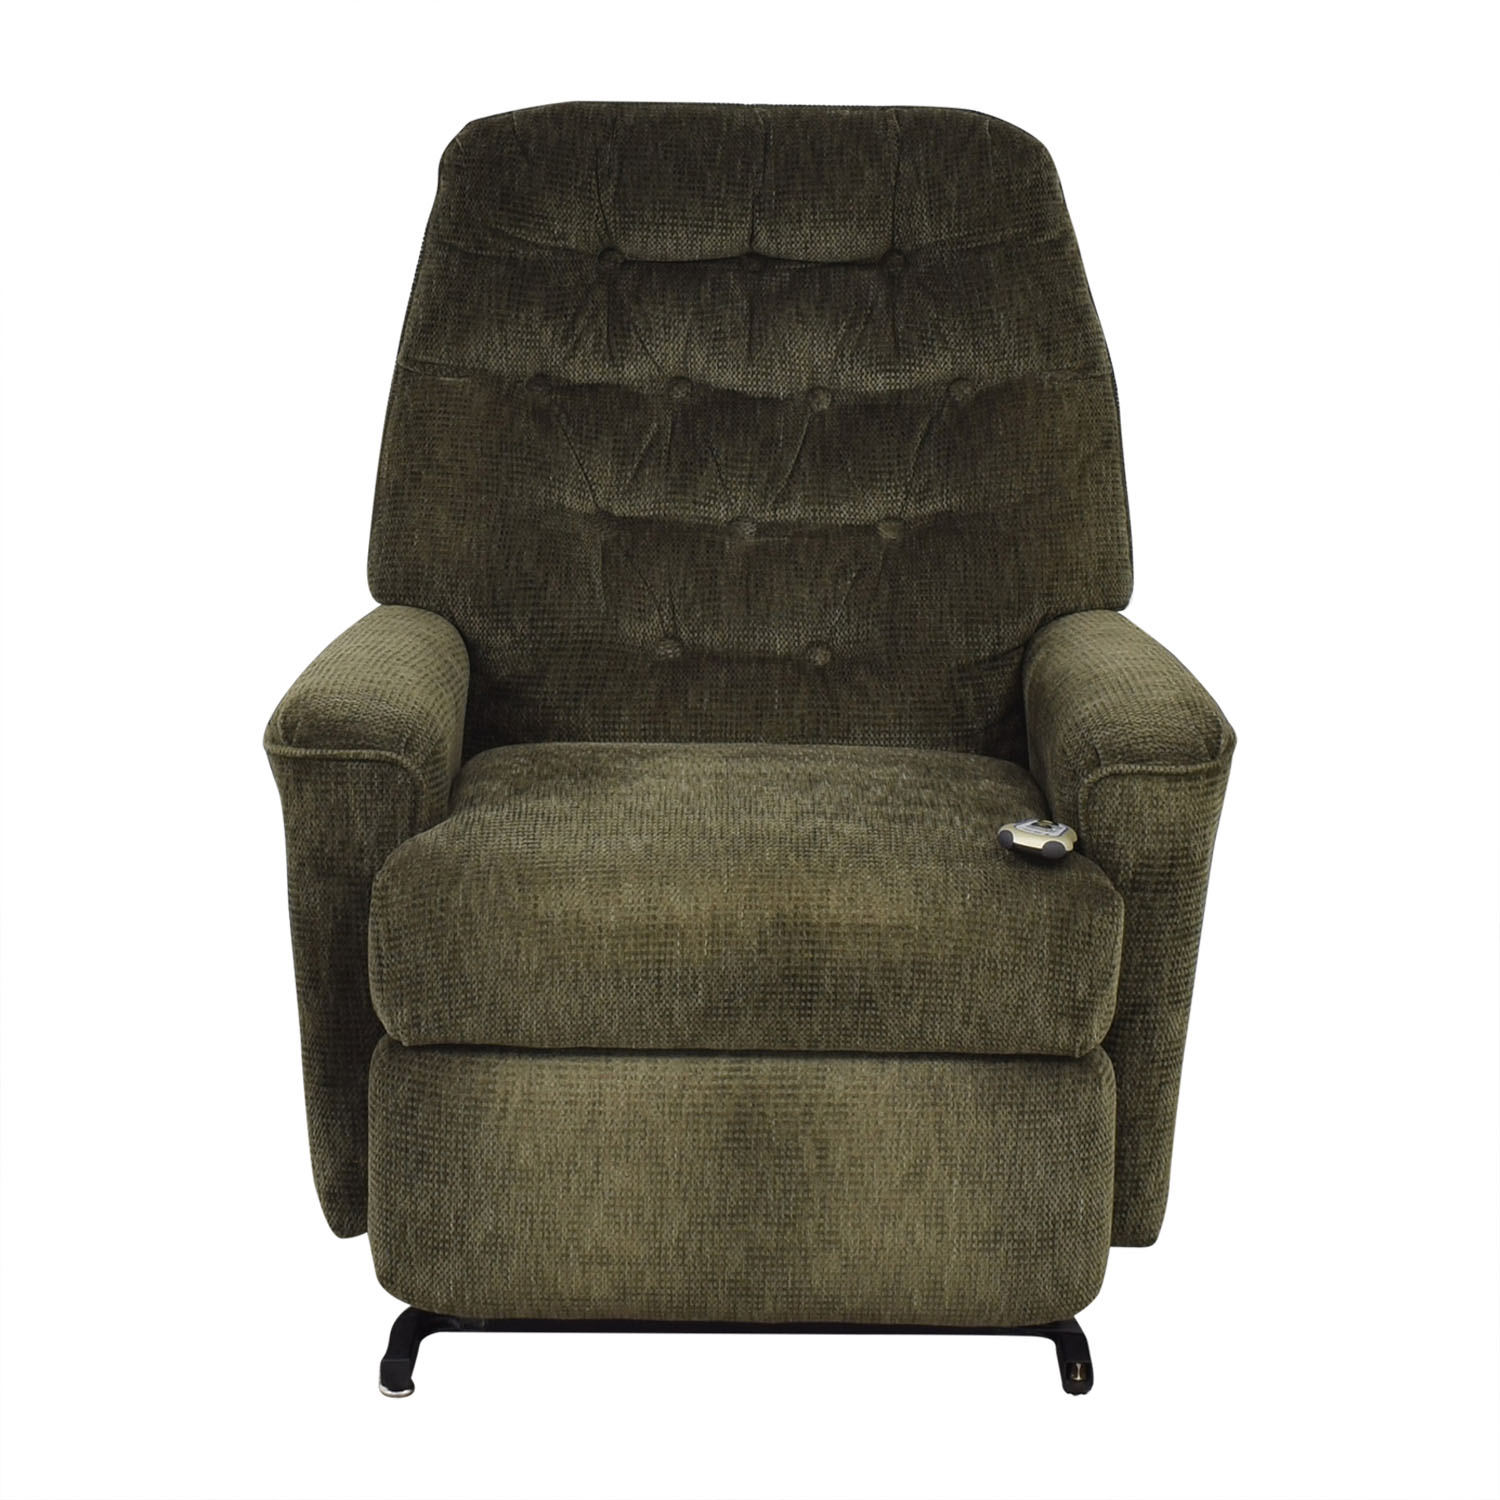 Best Chairs Best Chairs Power Lift Recliner dimensions